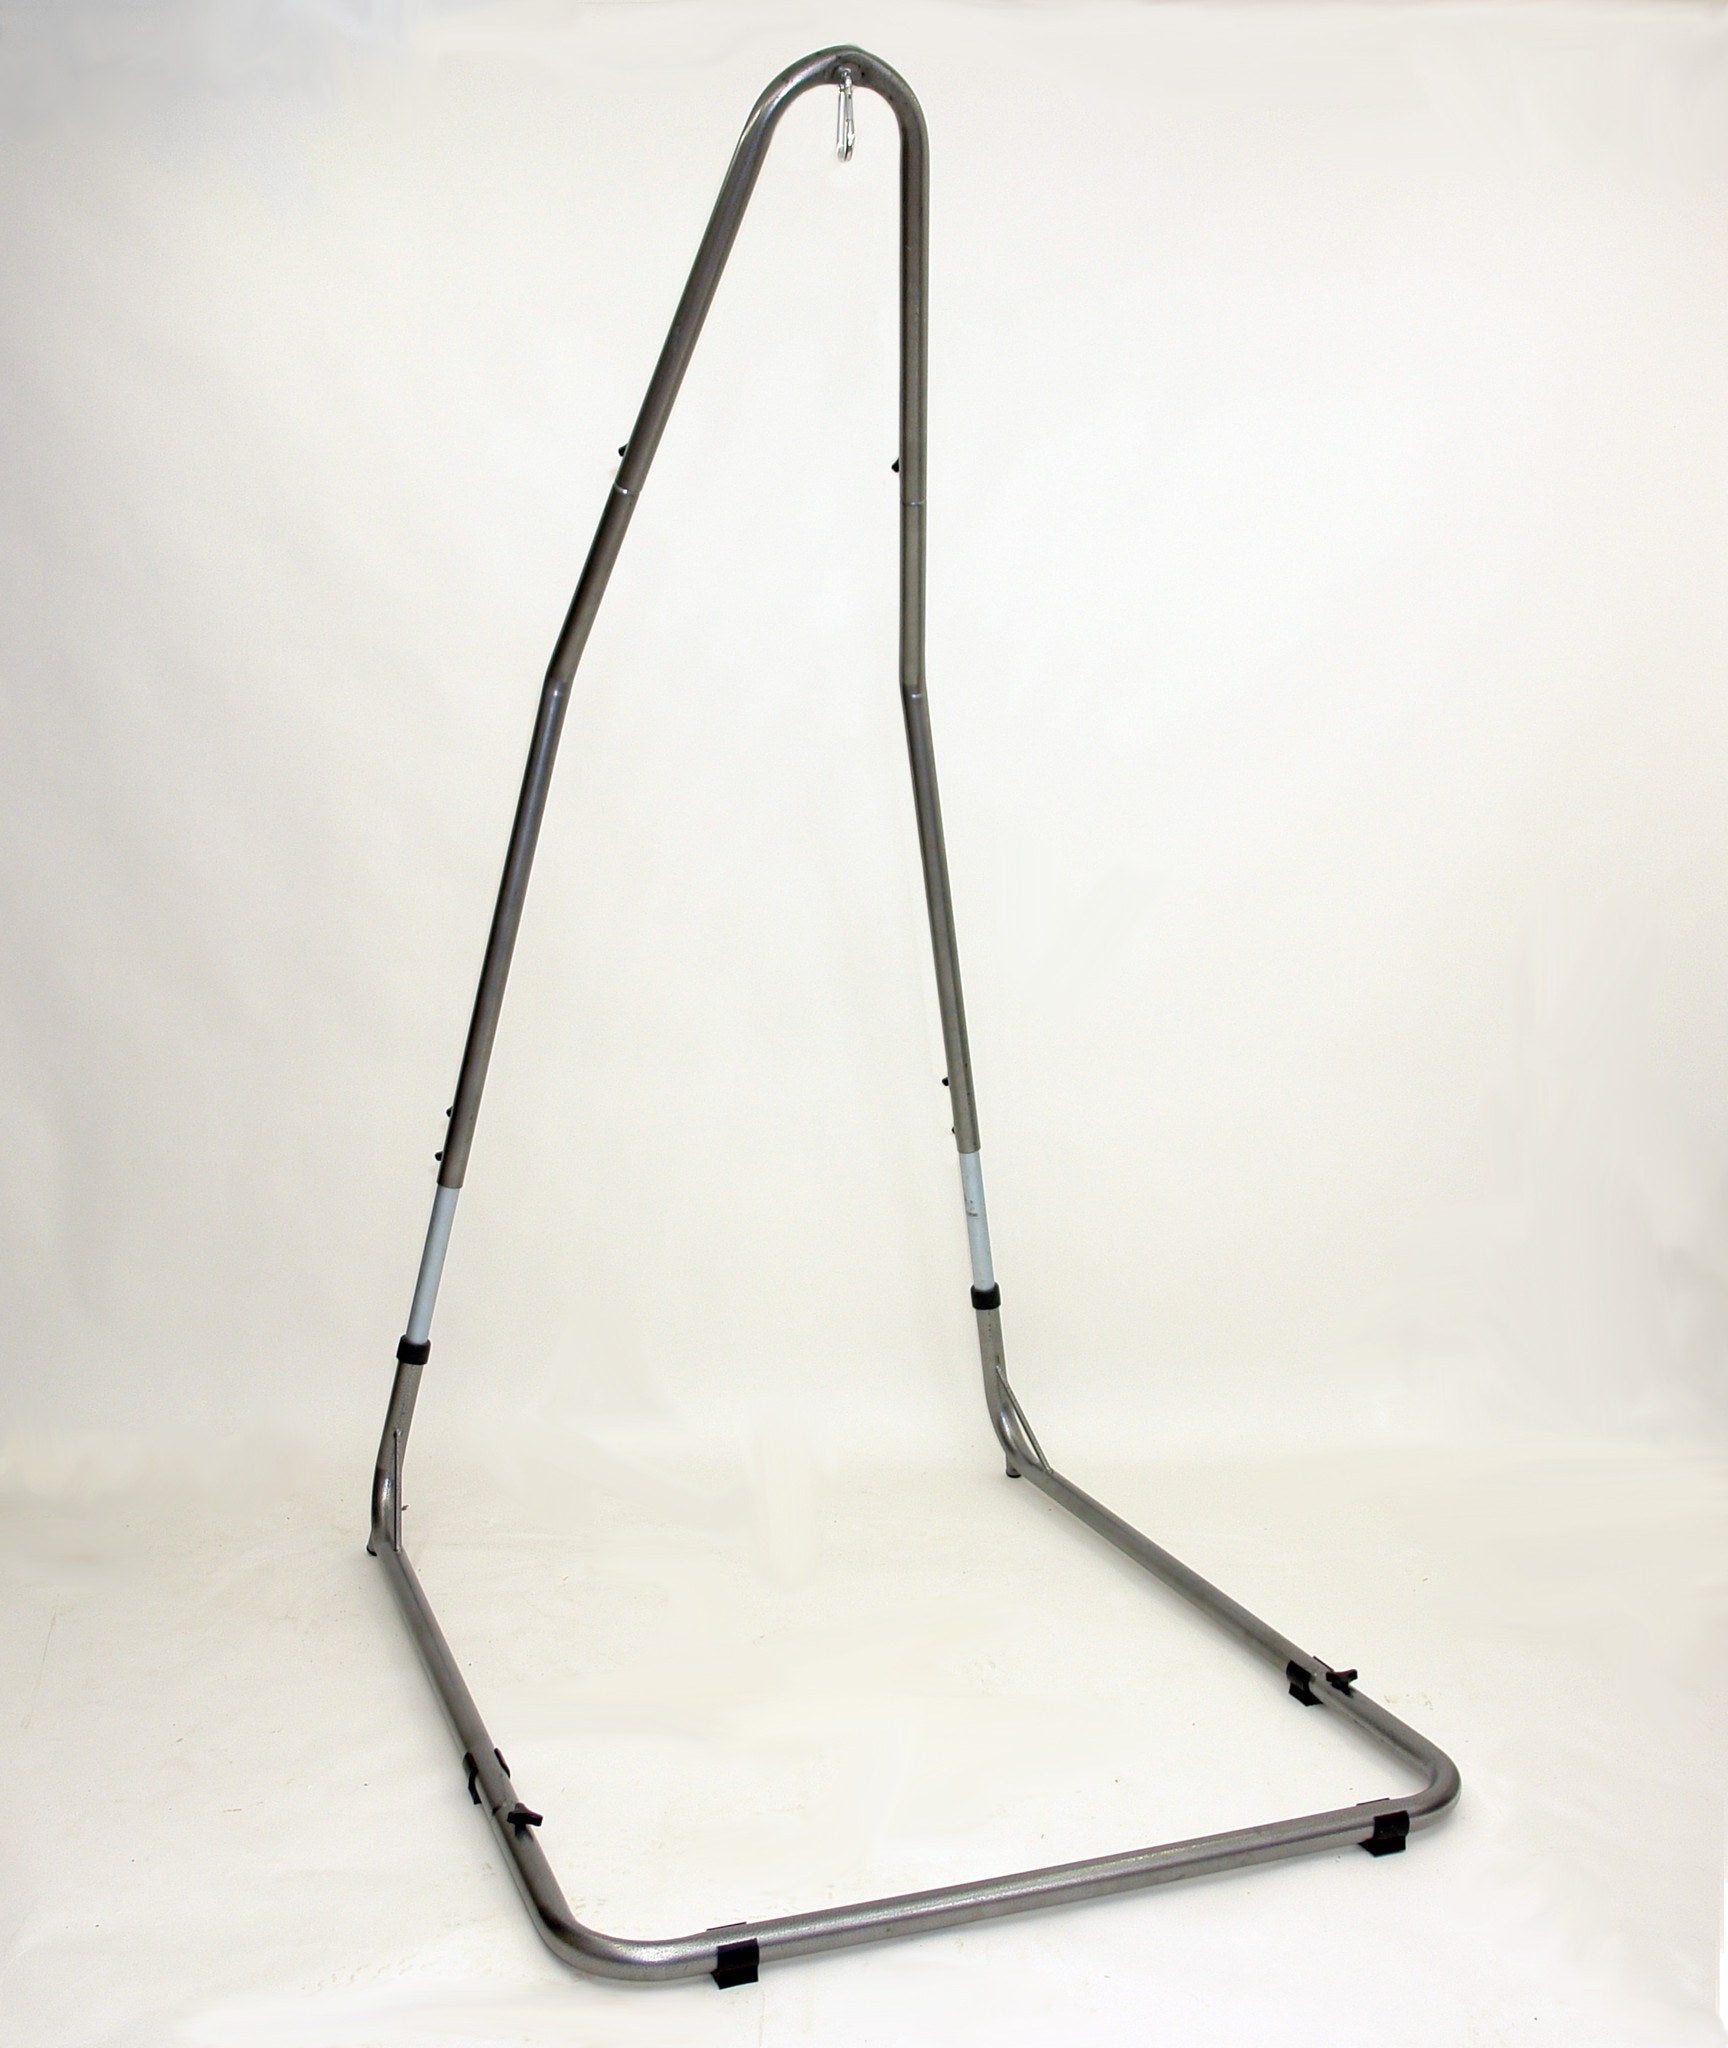 ... Luna Swinging Chair Stand Rockstone   Swings Nu0027 Hammocks   2 ...